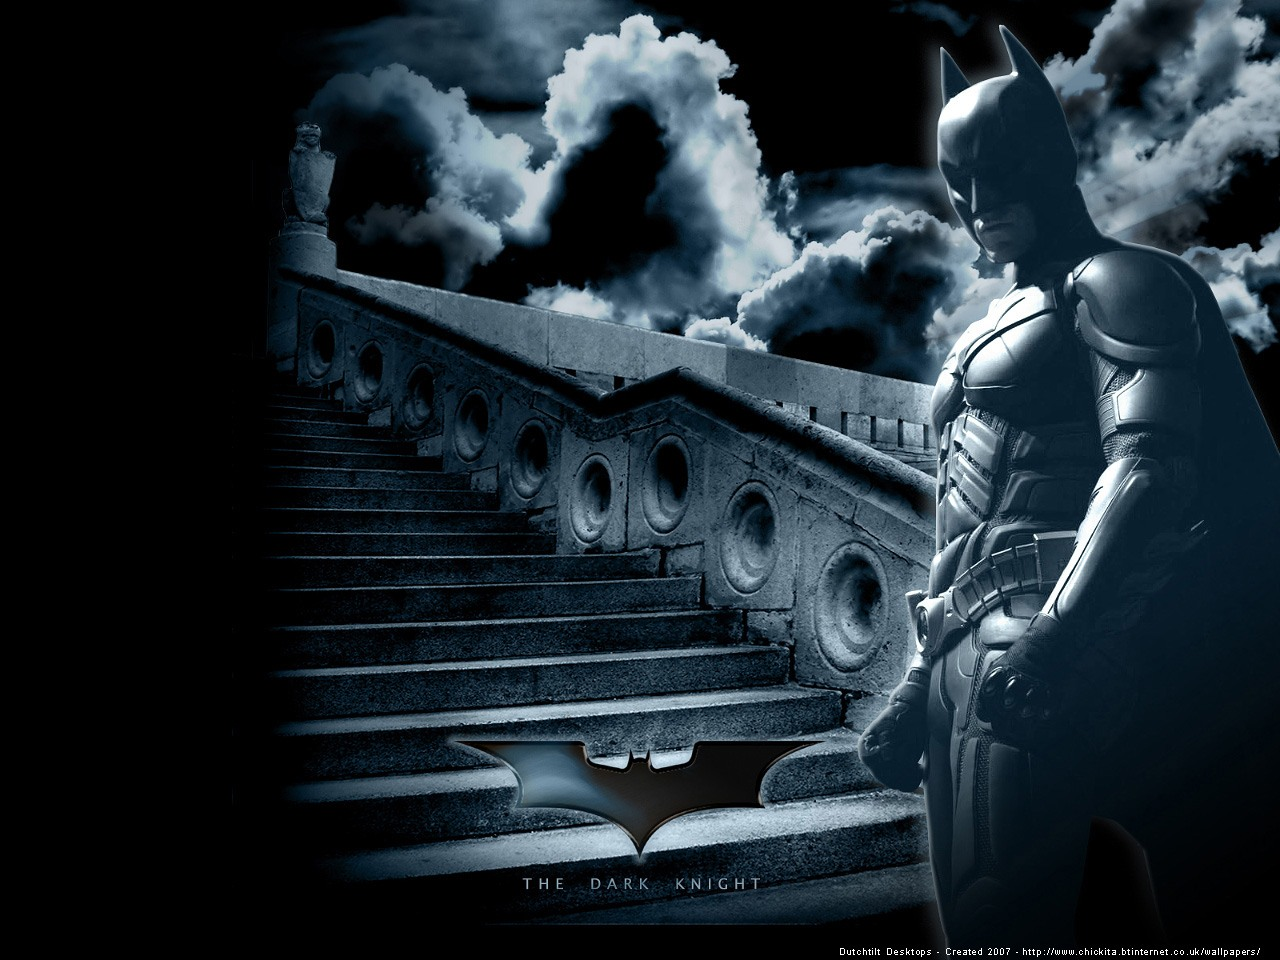 Batman dark knight wallpapers hd Funny Amazing Images 1280x960